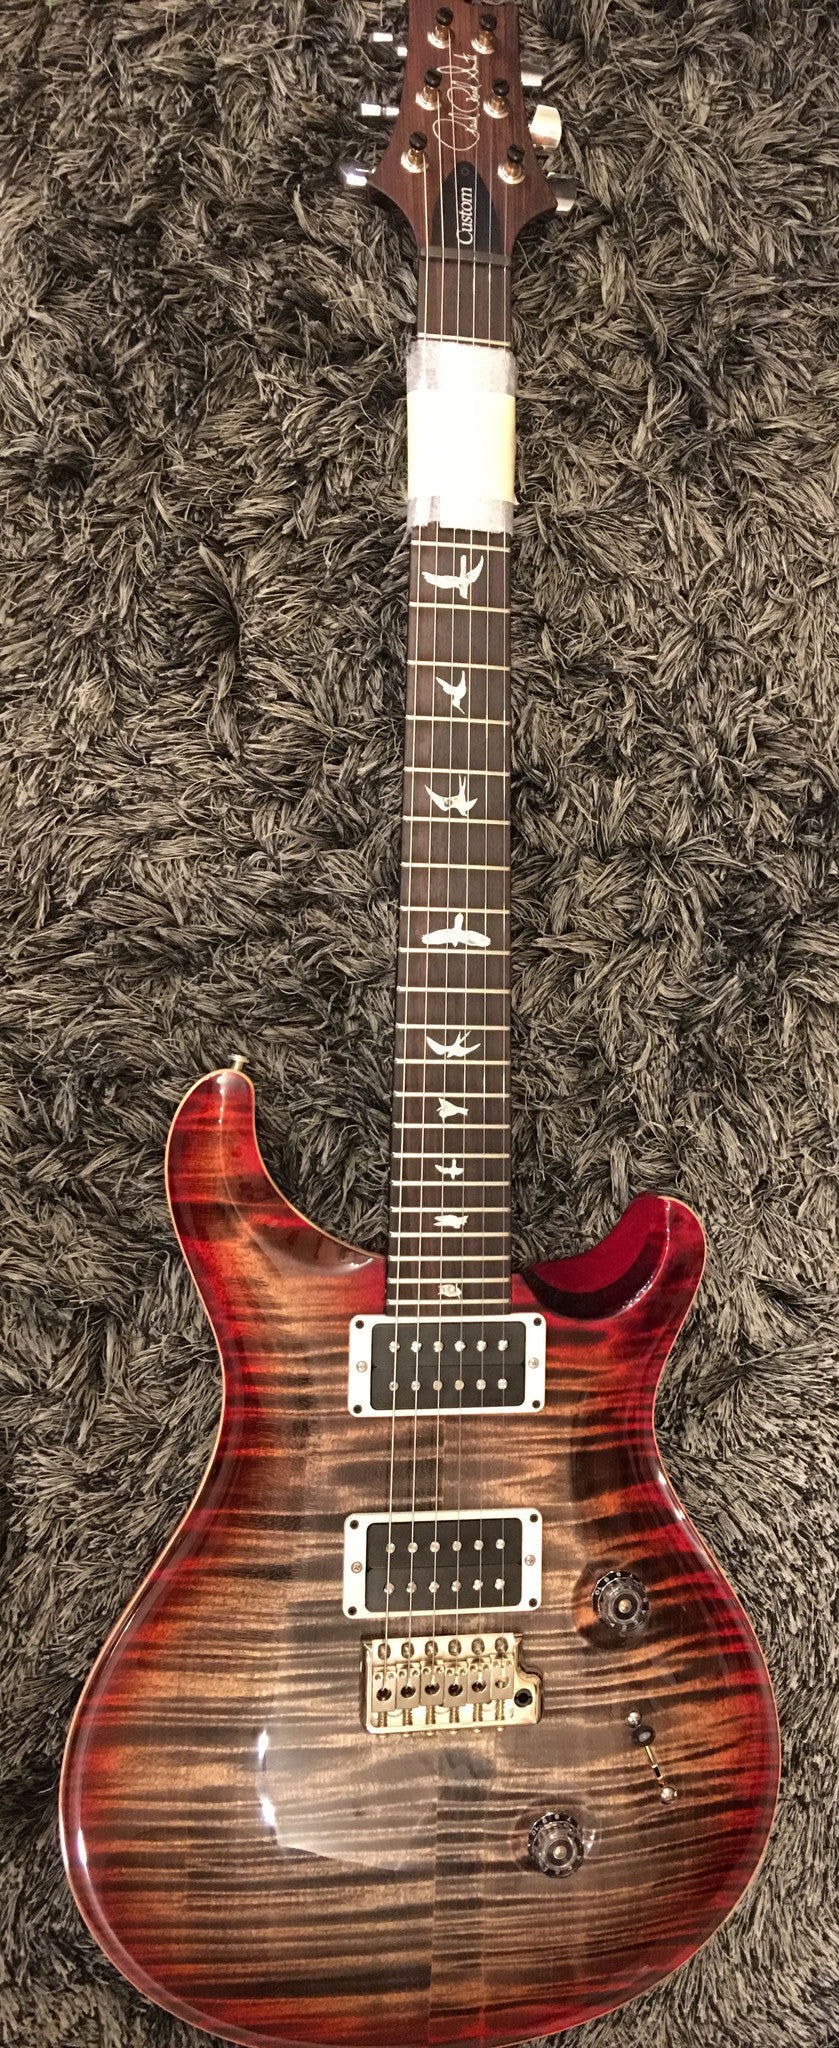 CUSTOM 24 10 TOP THIN STAINED MAPLE NECK CHARCOAL CHERRY BURST PRS - HIENDGUITAR.COM